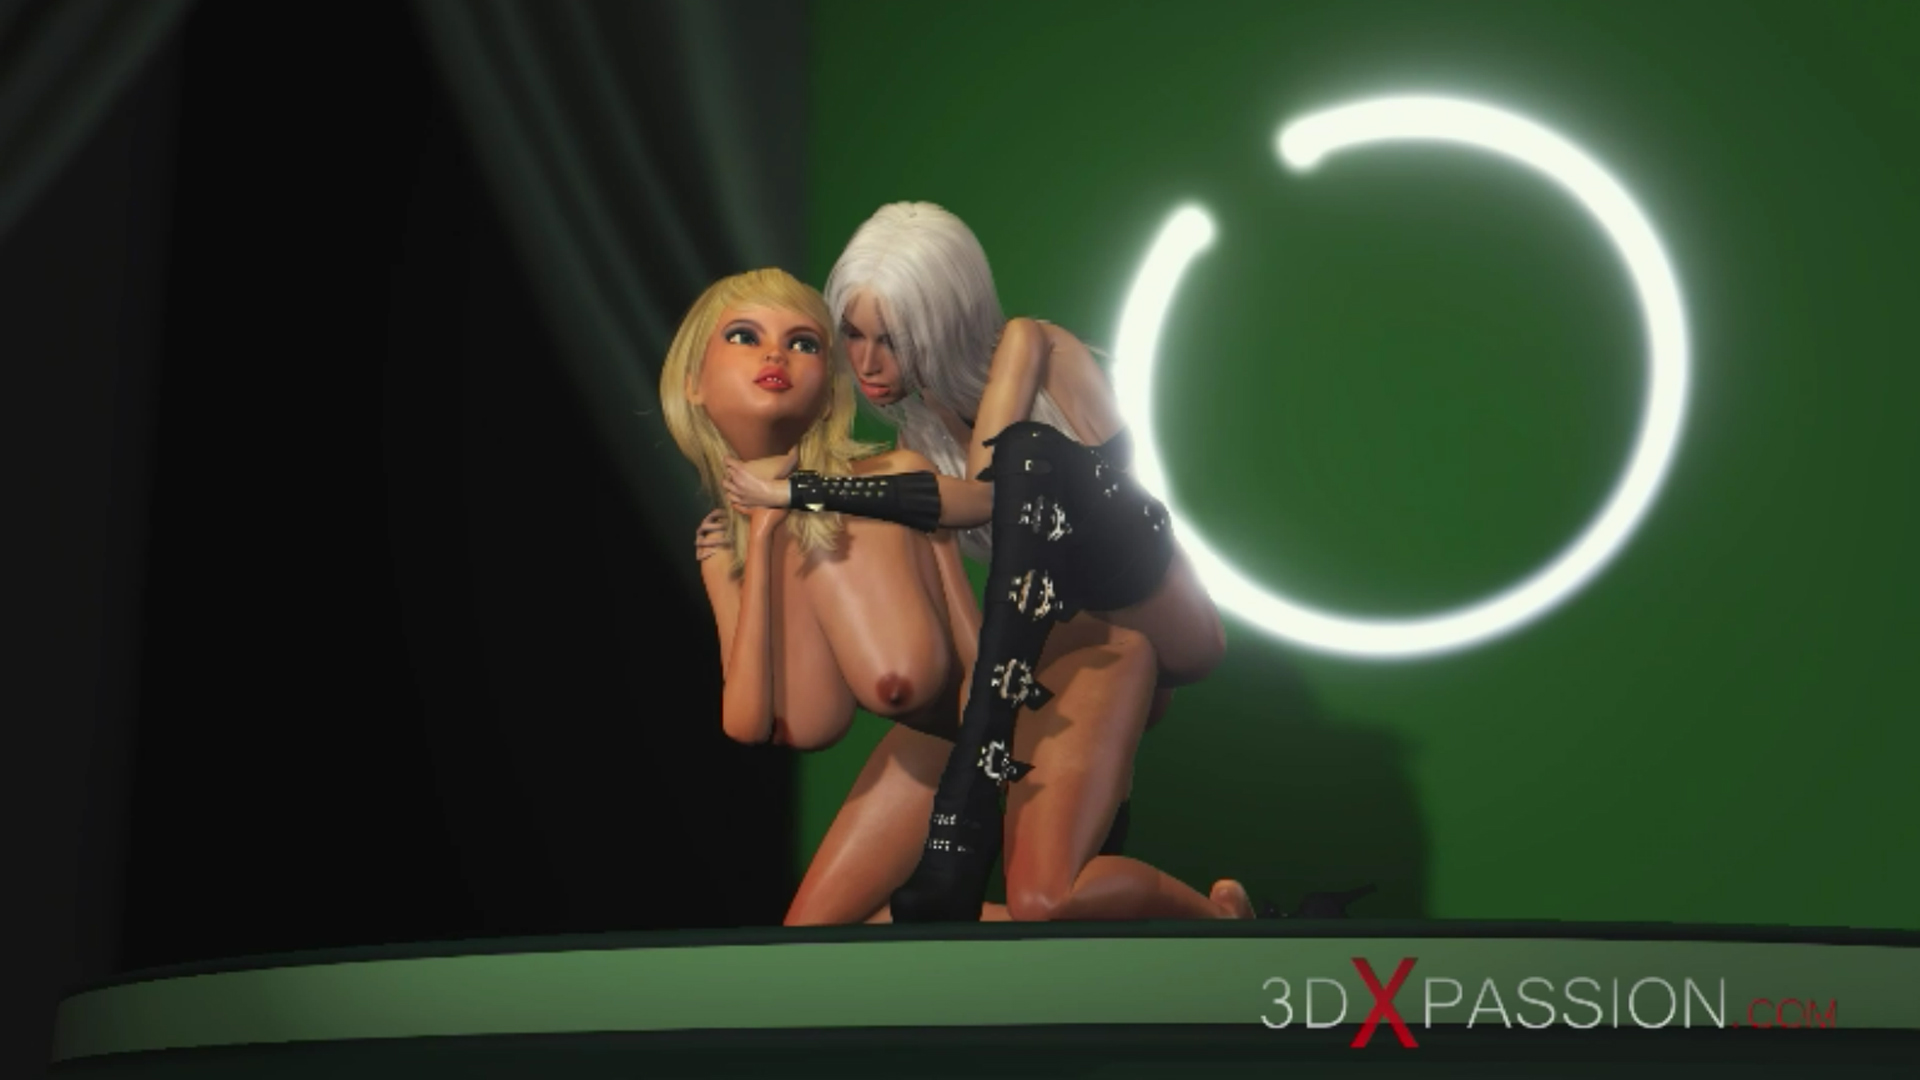 horny blonde girlfriend doggystyle 3d shemale fashion model podium